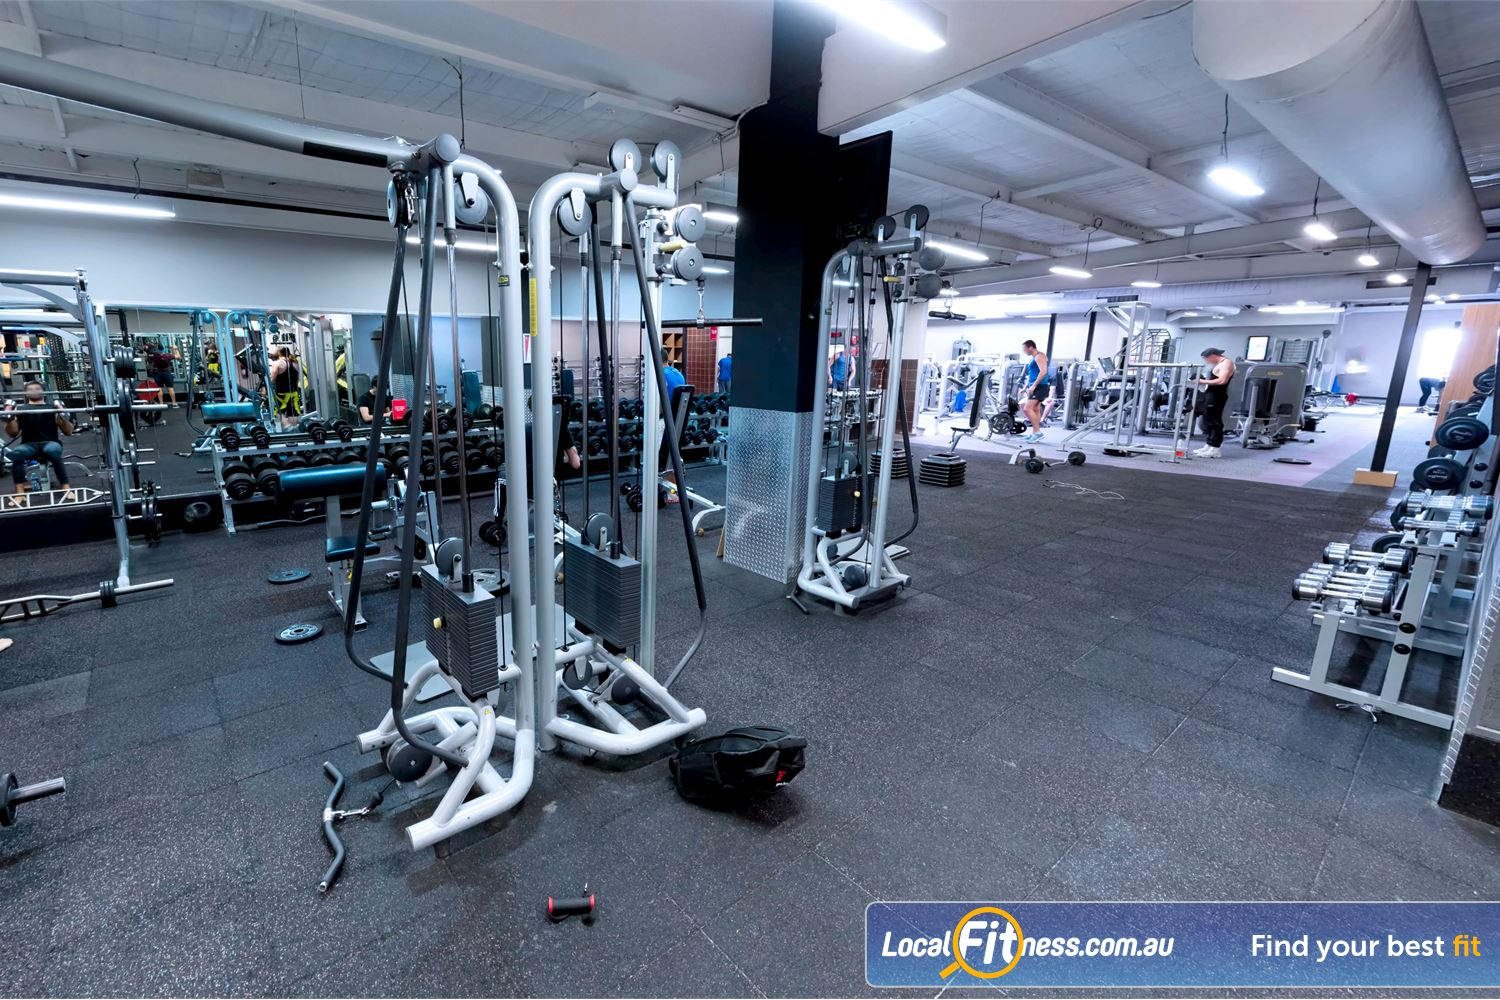 Fitness First Newtown Welcome to the state of the art Fitness First Newtown gym.